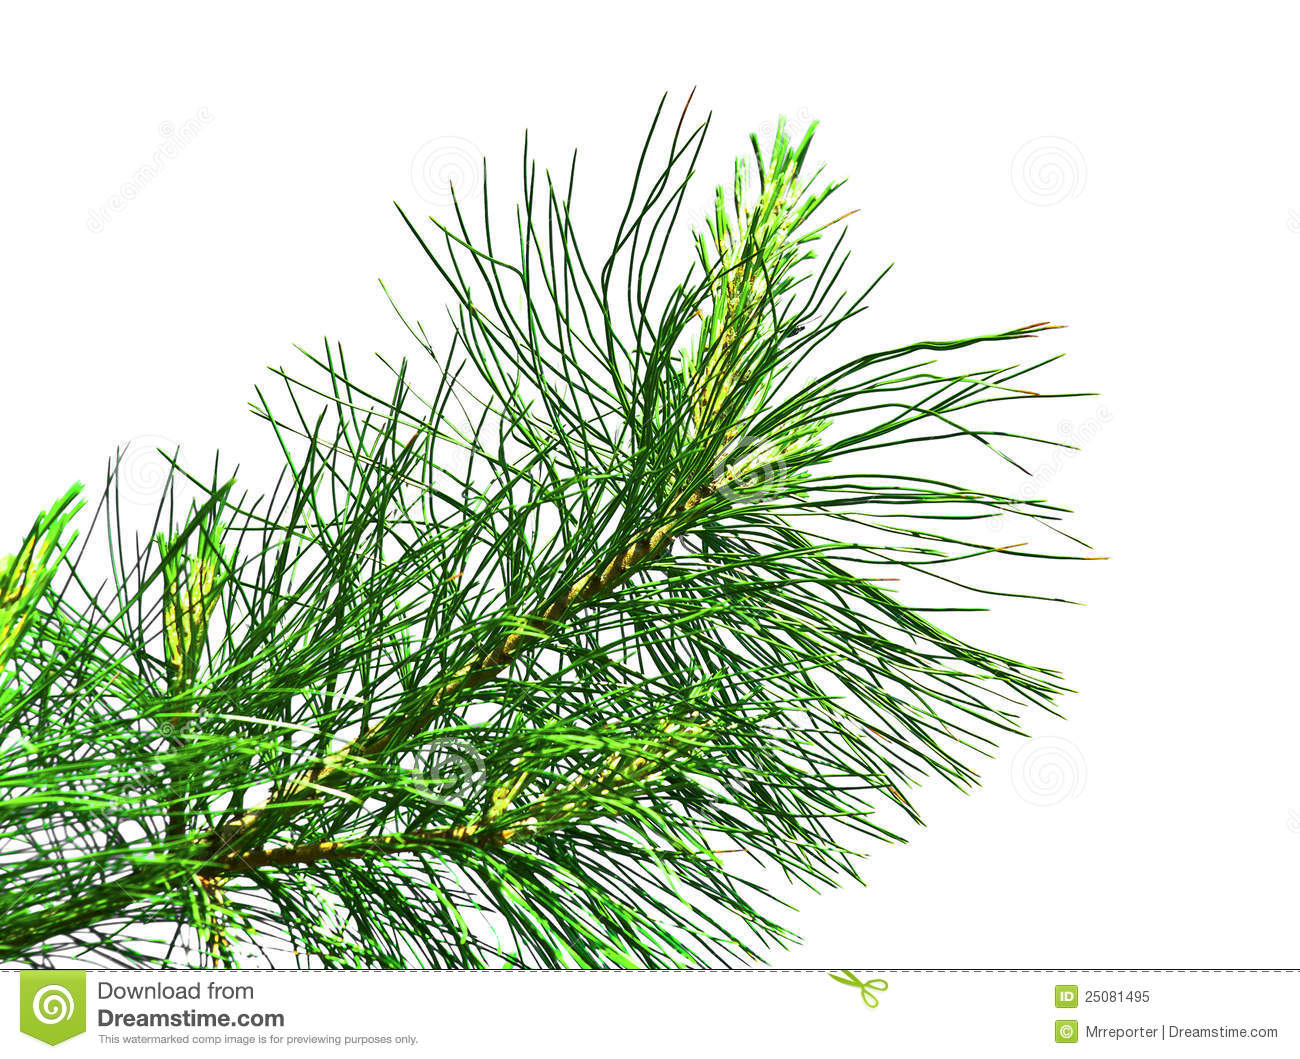 Evergreen Branch Royalty Free Stock Photo - Image: 25081495 Evergreen Branch